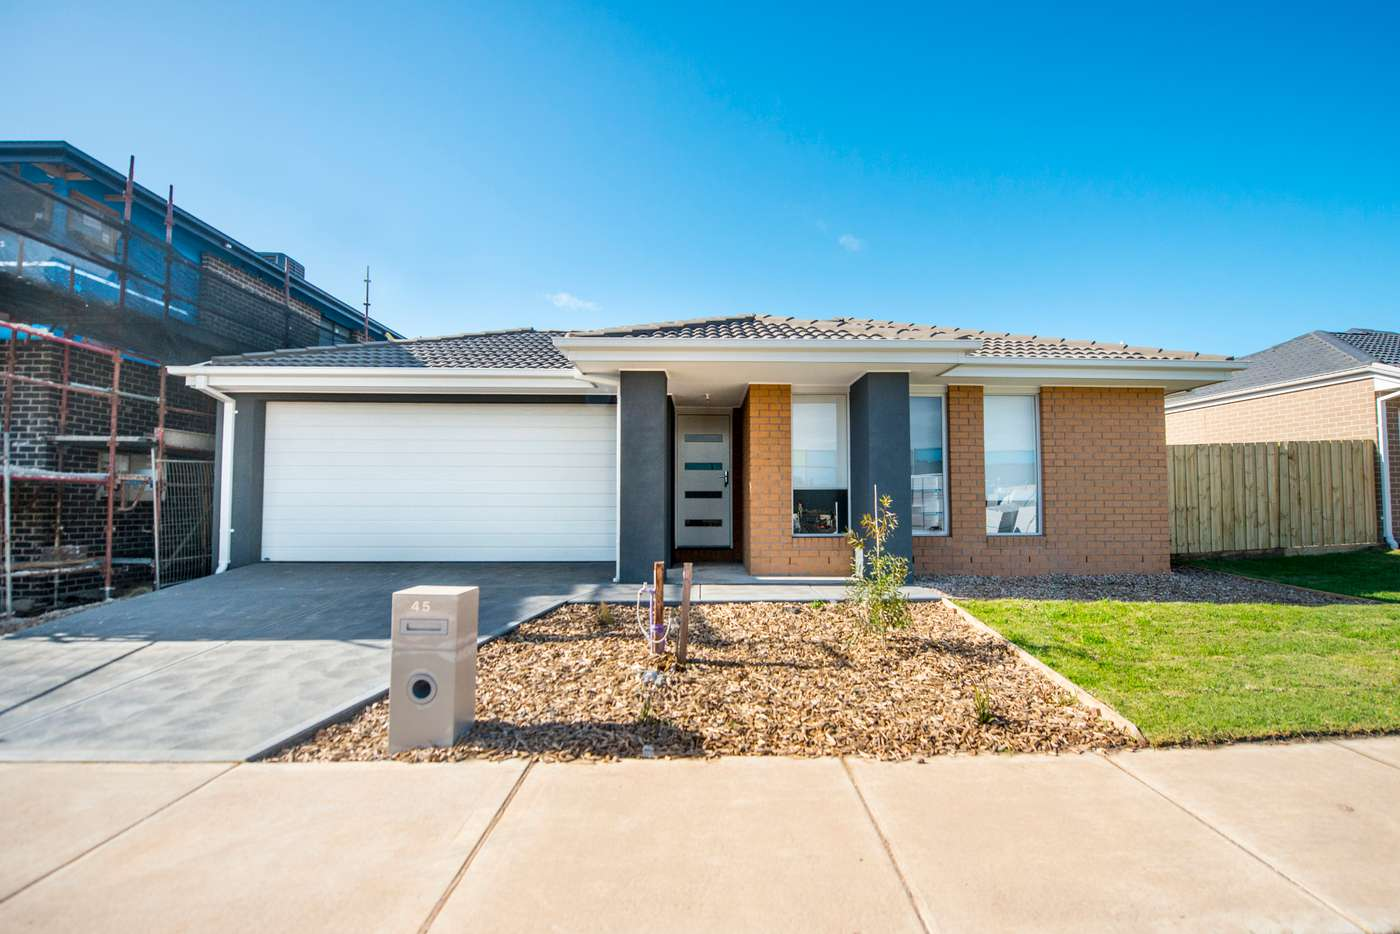 Main view of Homely house listing, 45 Harlem Circuit, Point Cook VIC 3030